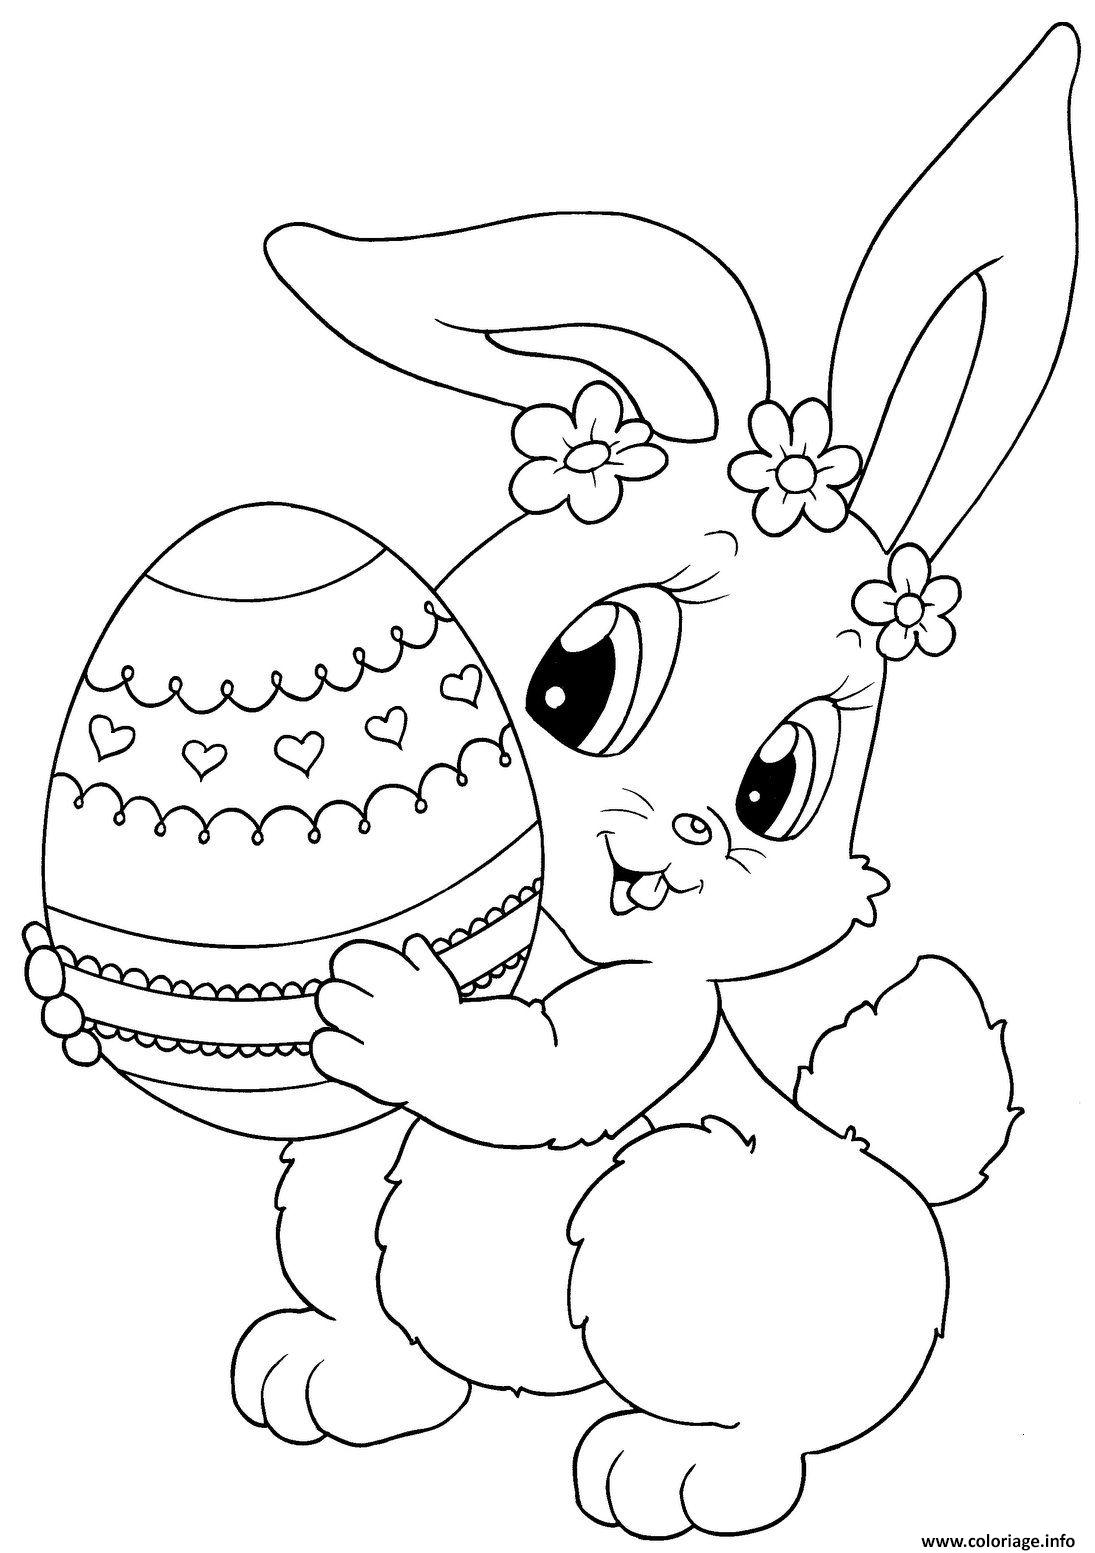 coloriage lapin de paques avec un oeuf dessin. Black Bedroom Furniture Sets. Home Design Ideas